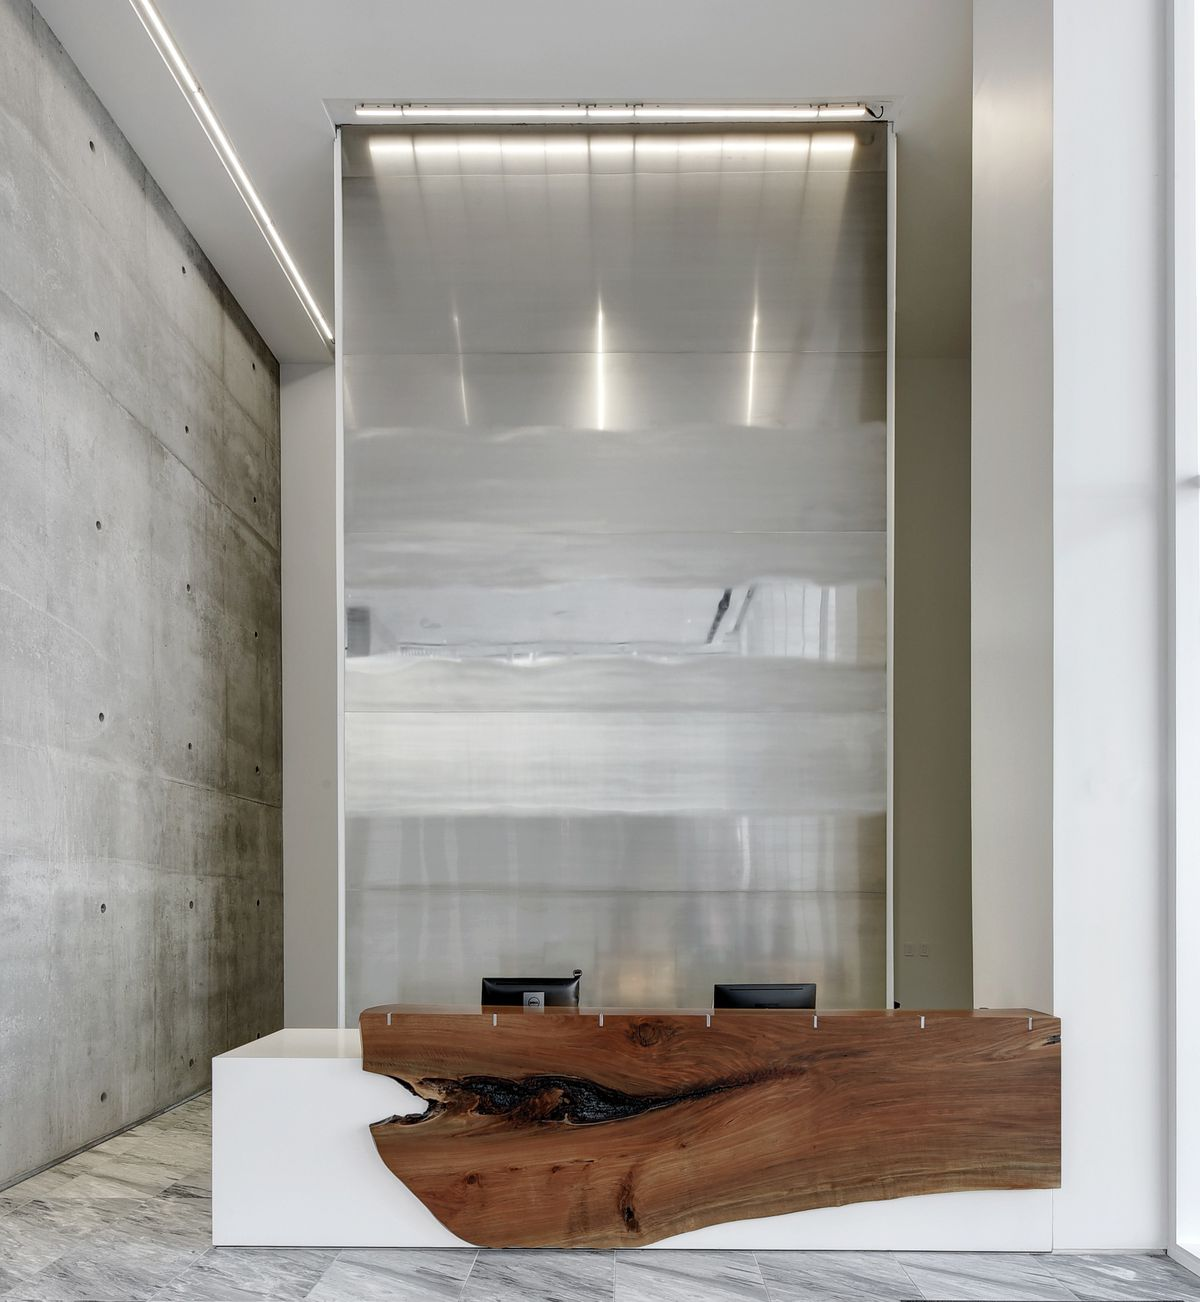 A two-story building lobby with raw concrete walls, marble floors, and a built-in white desk with a sculptural wooden front.